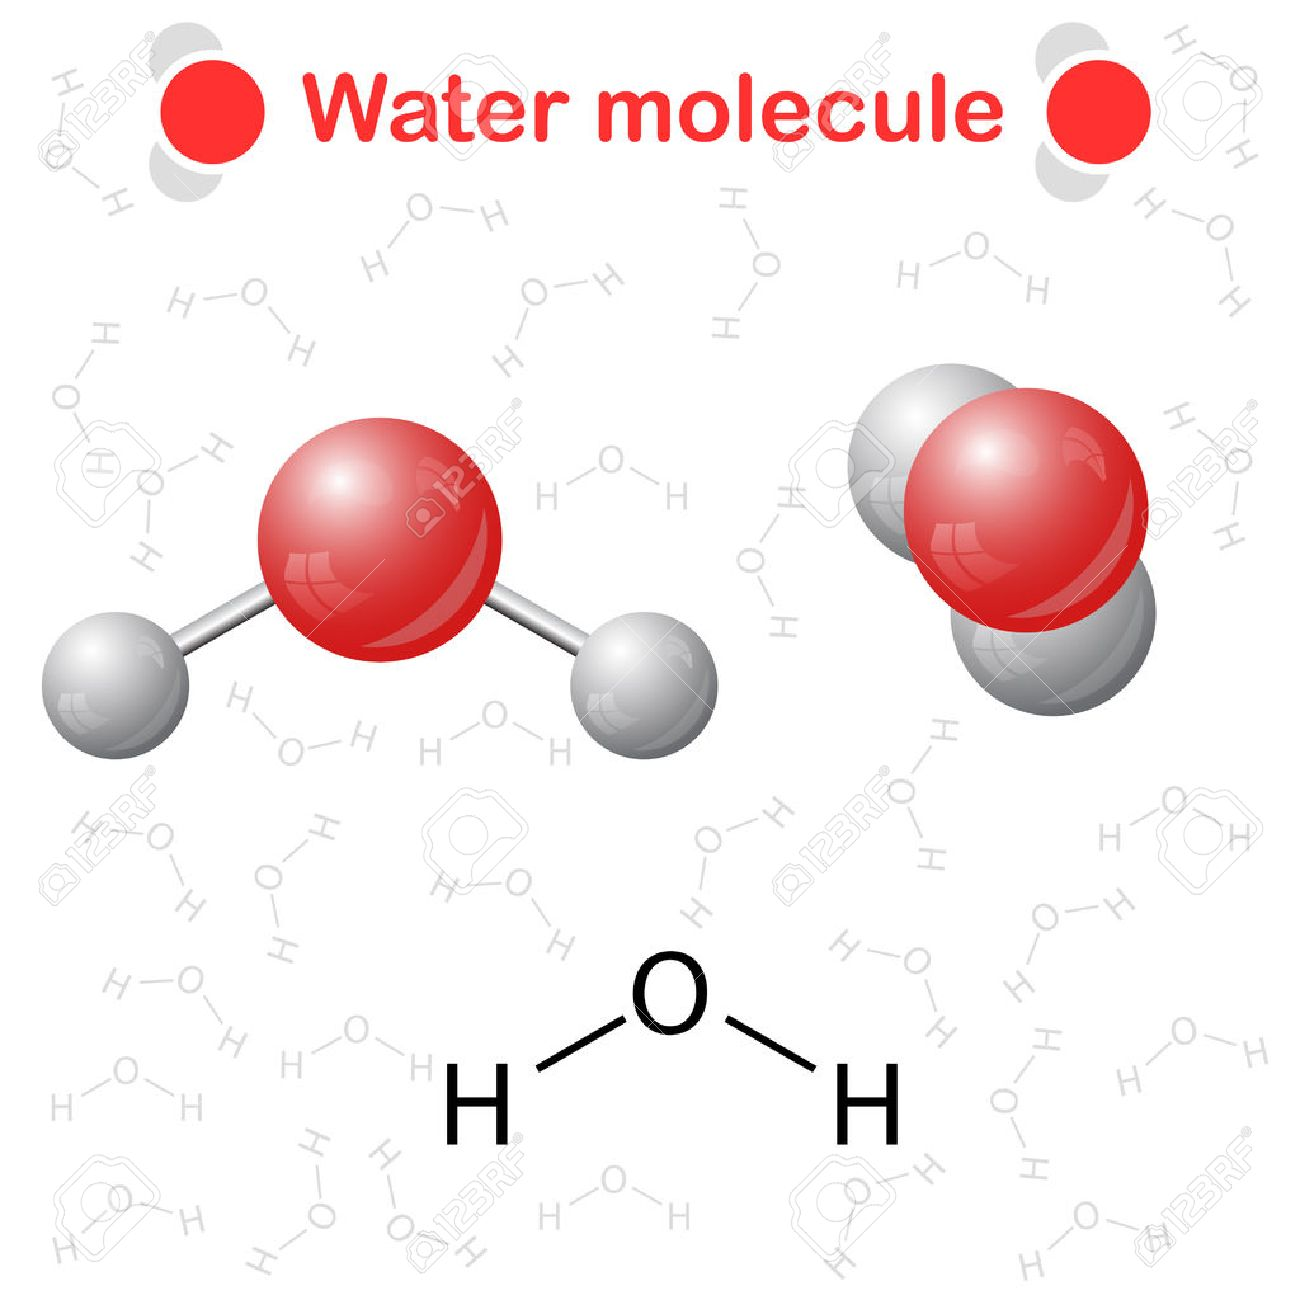 Water molecule icon and chemical formula h2o 2d 3d illustration water molecule icon and chemical formula h2o 2d 3d illustration vector buycottarizona Choice Image